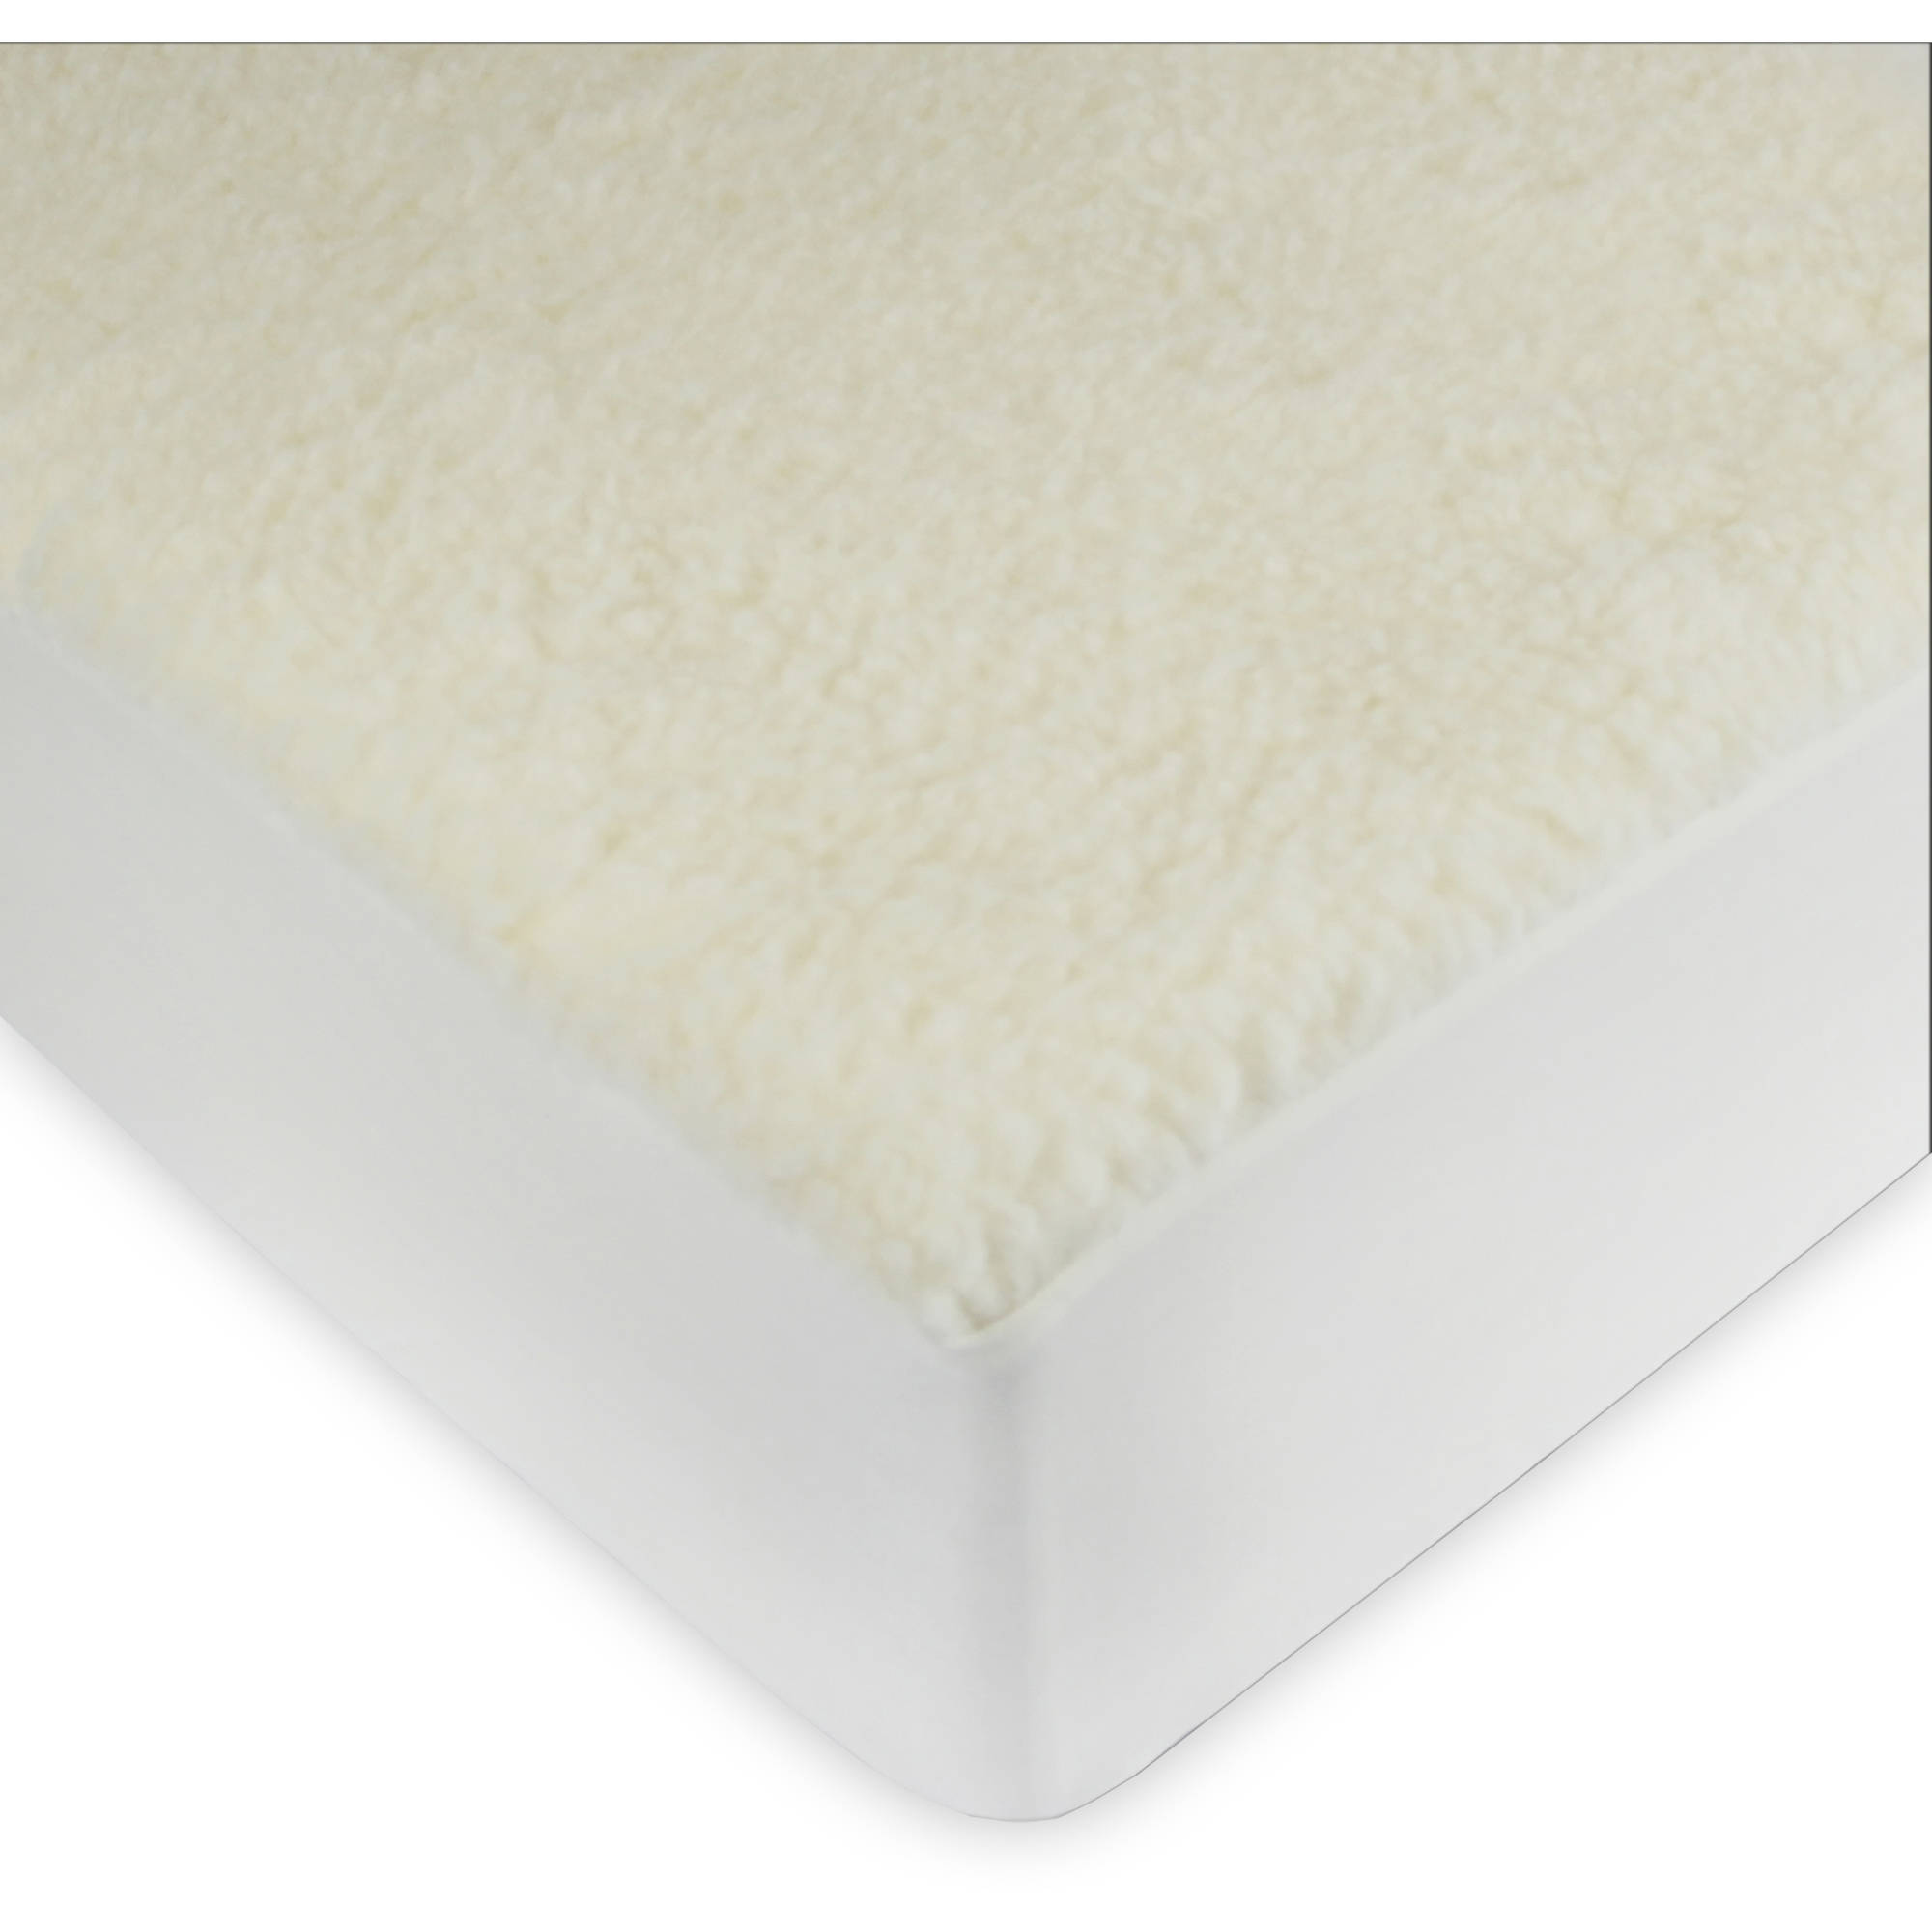 Century Home C601-010 Natural Home Wool Mark Certified Pure Wool Filled Comfo...